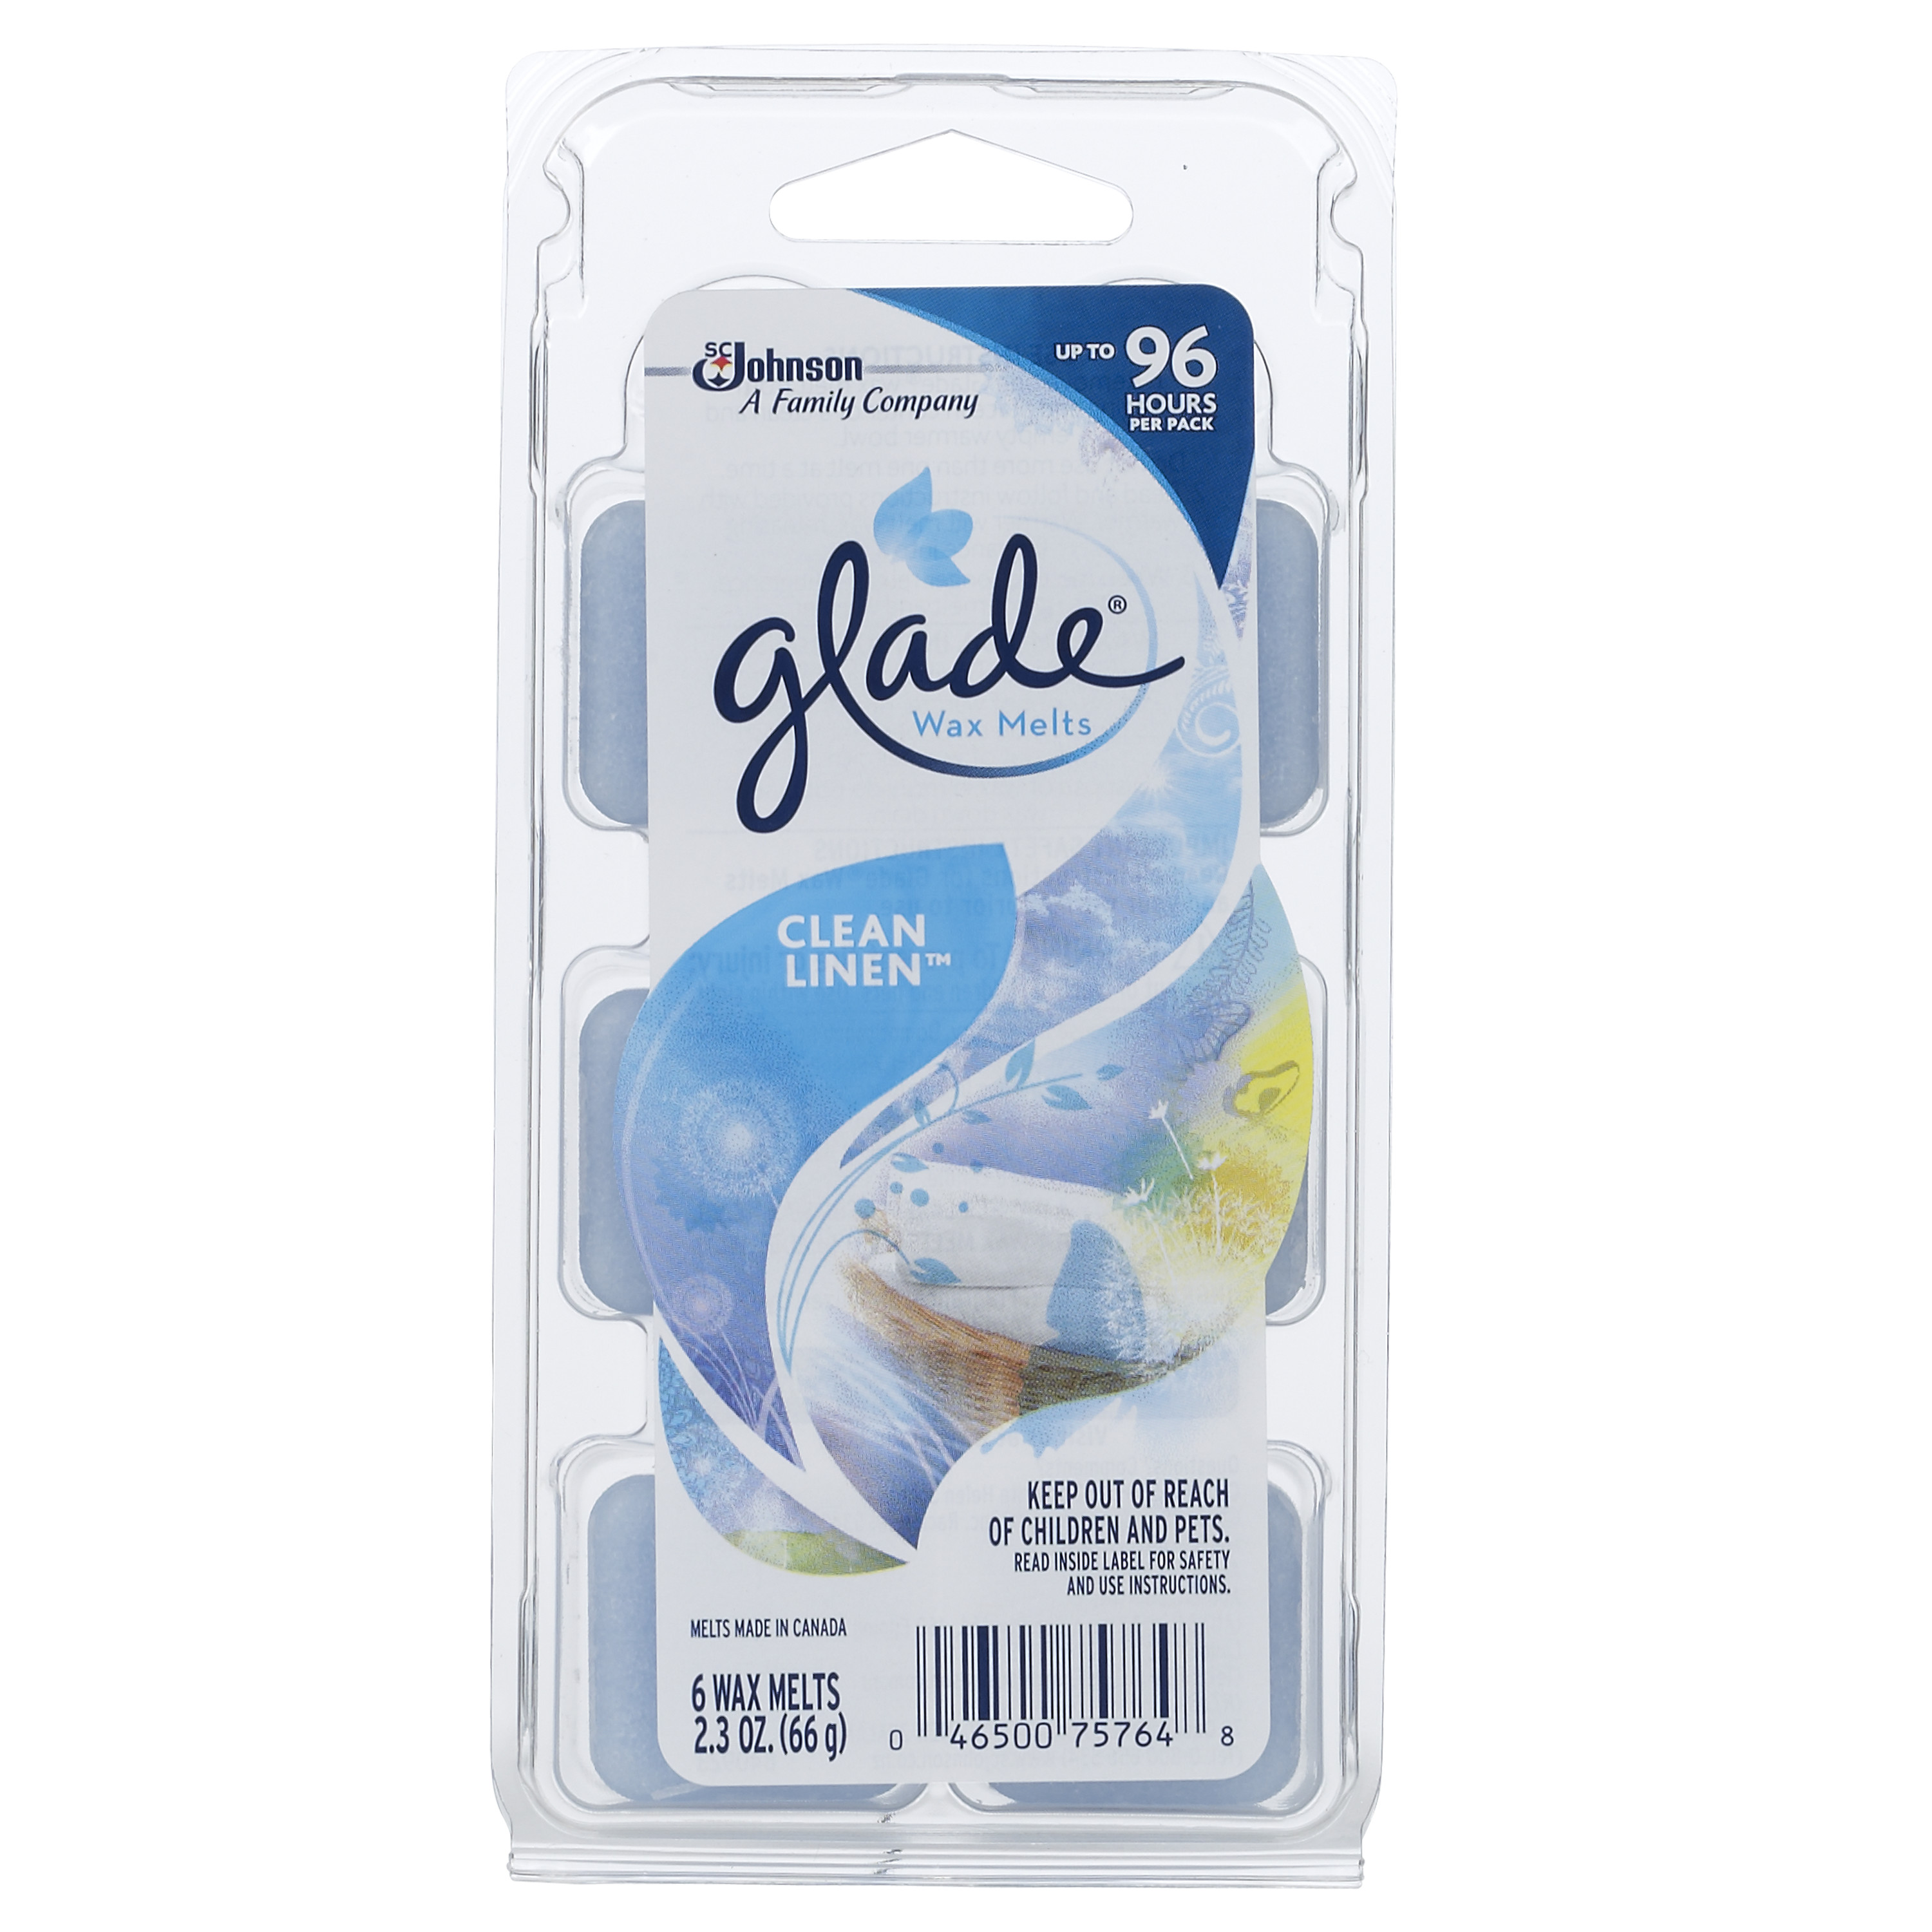 Glade Wax Melts, Clean Linen, 2.3 Oz. (Pack of 6)